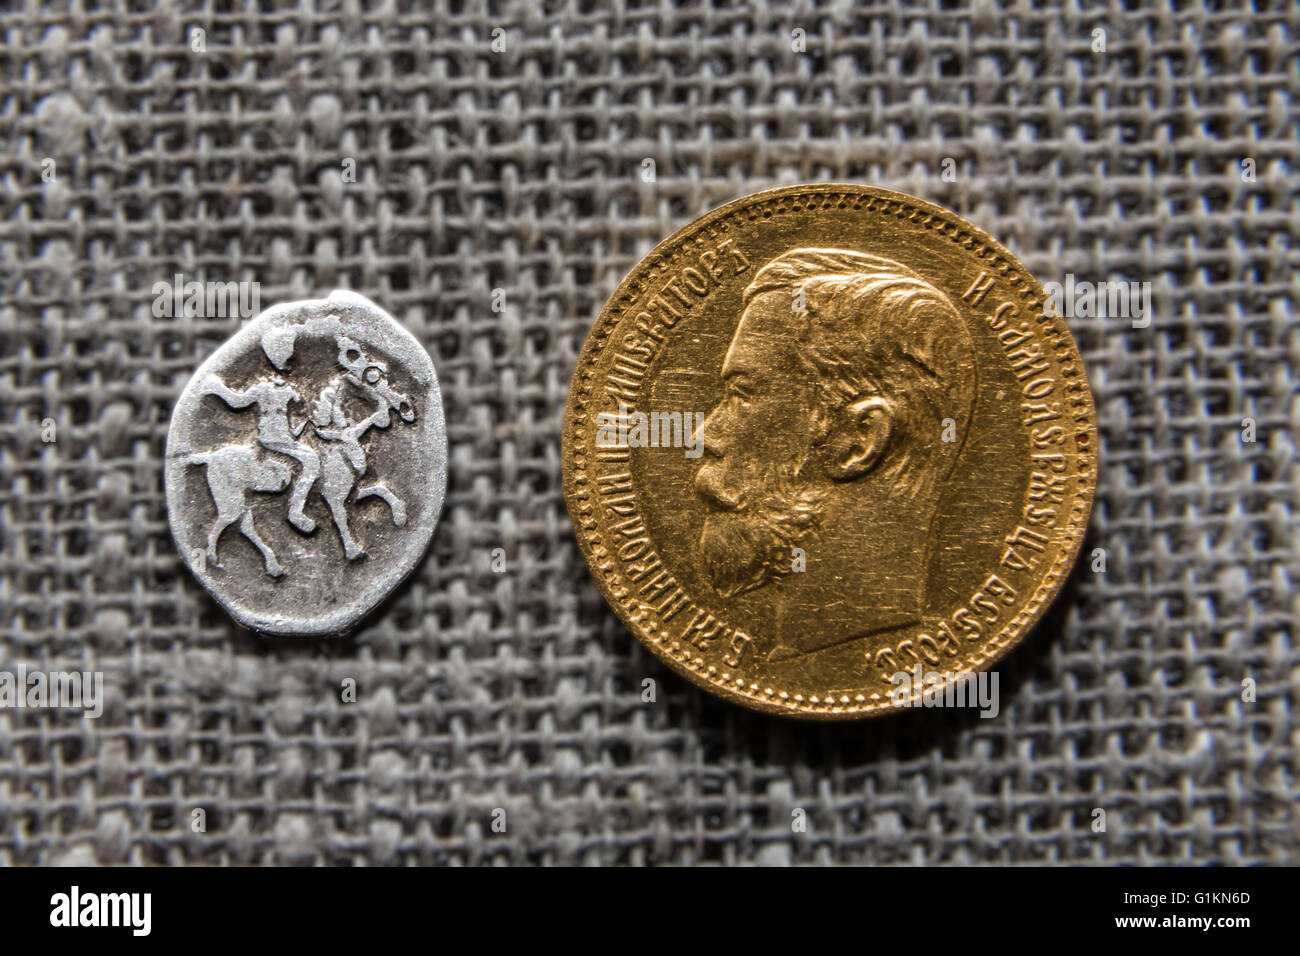 two Russian coins - Stock Image